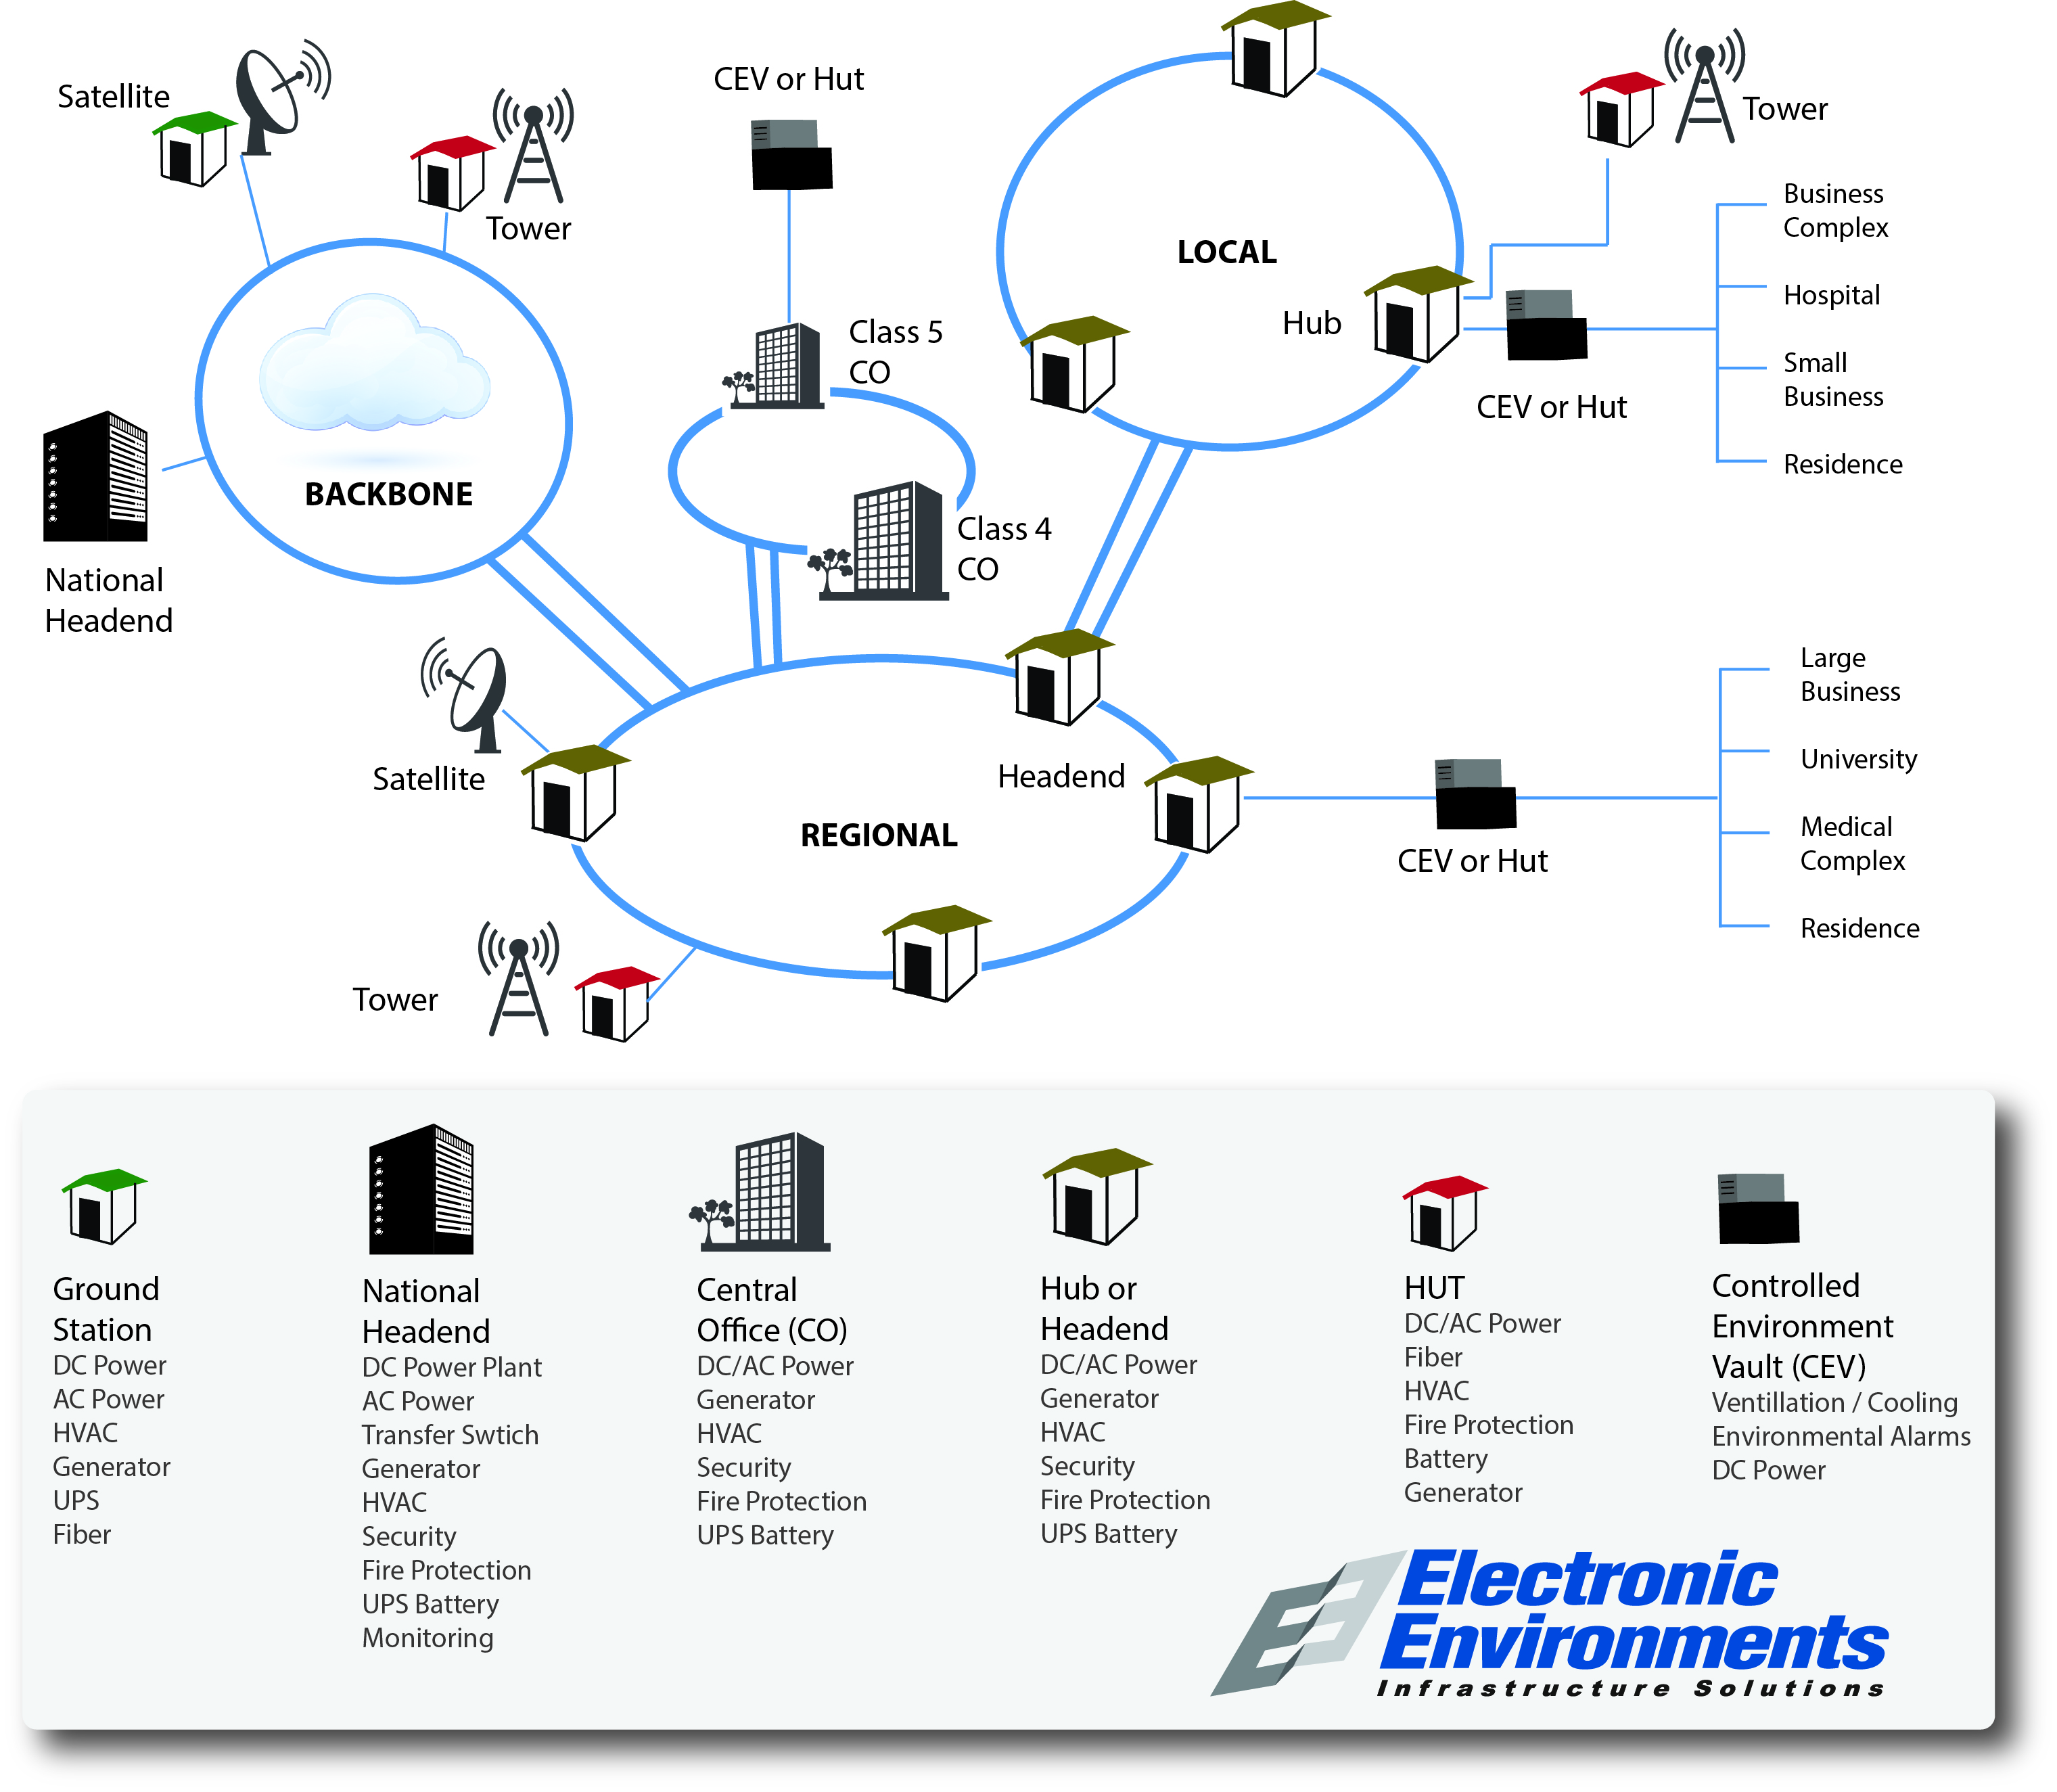 eec supports communications infrastructure learn how eec's telecom outside  plant